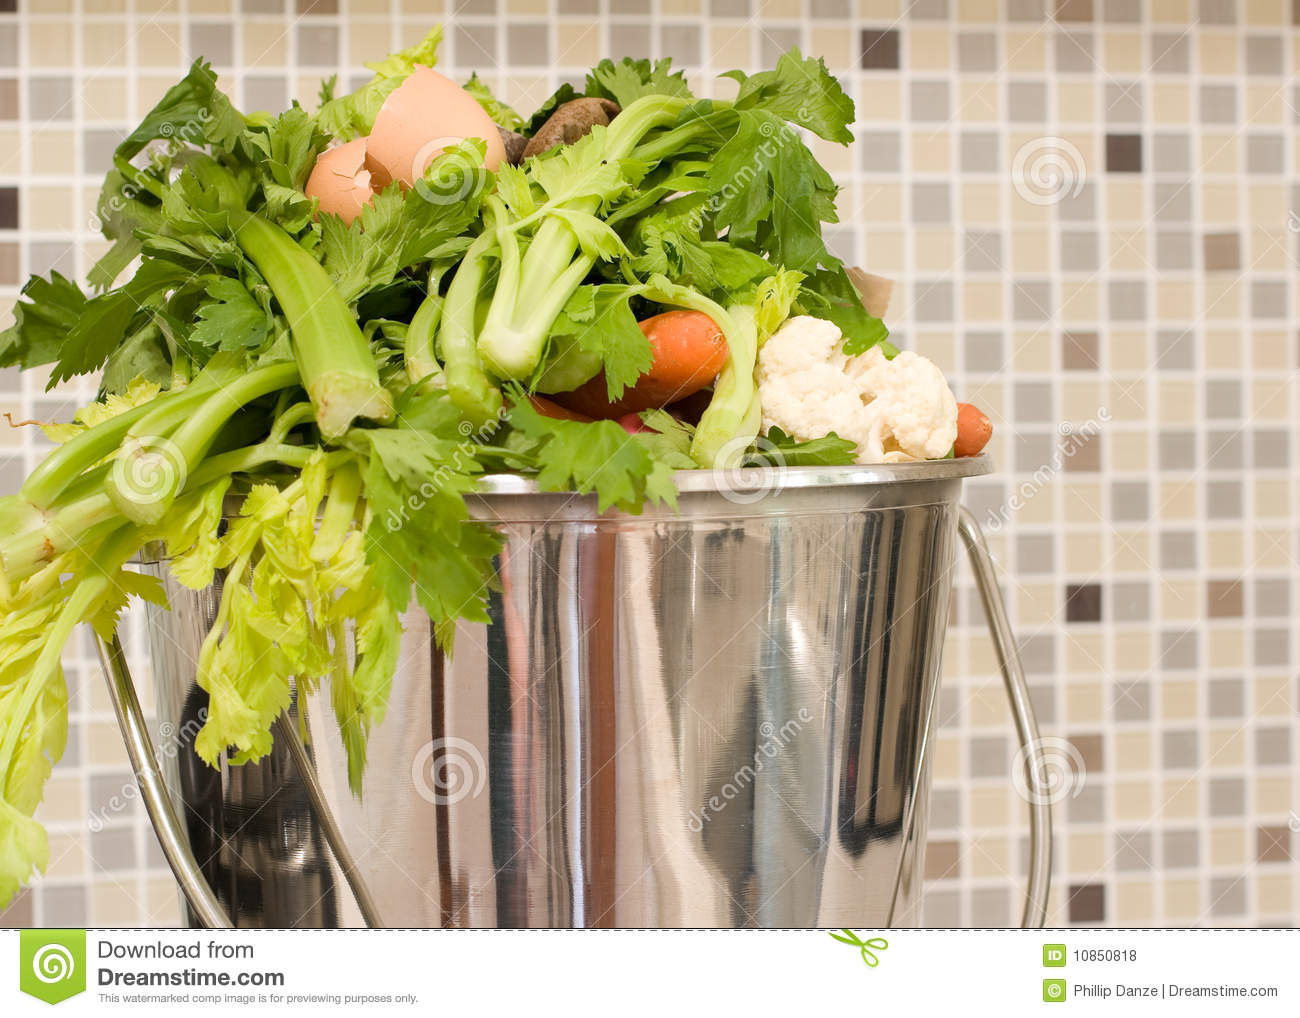 Kitchen scraps in a stainless steel bucket.